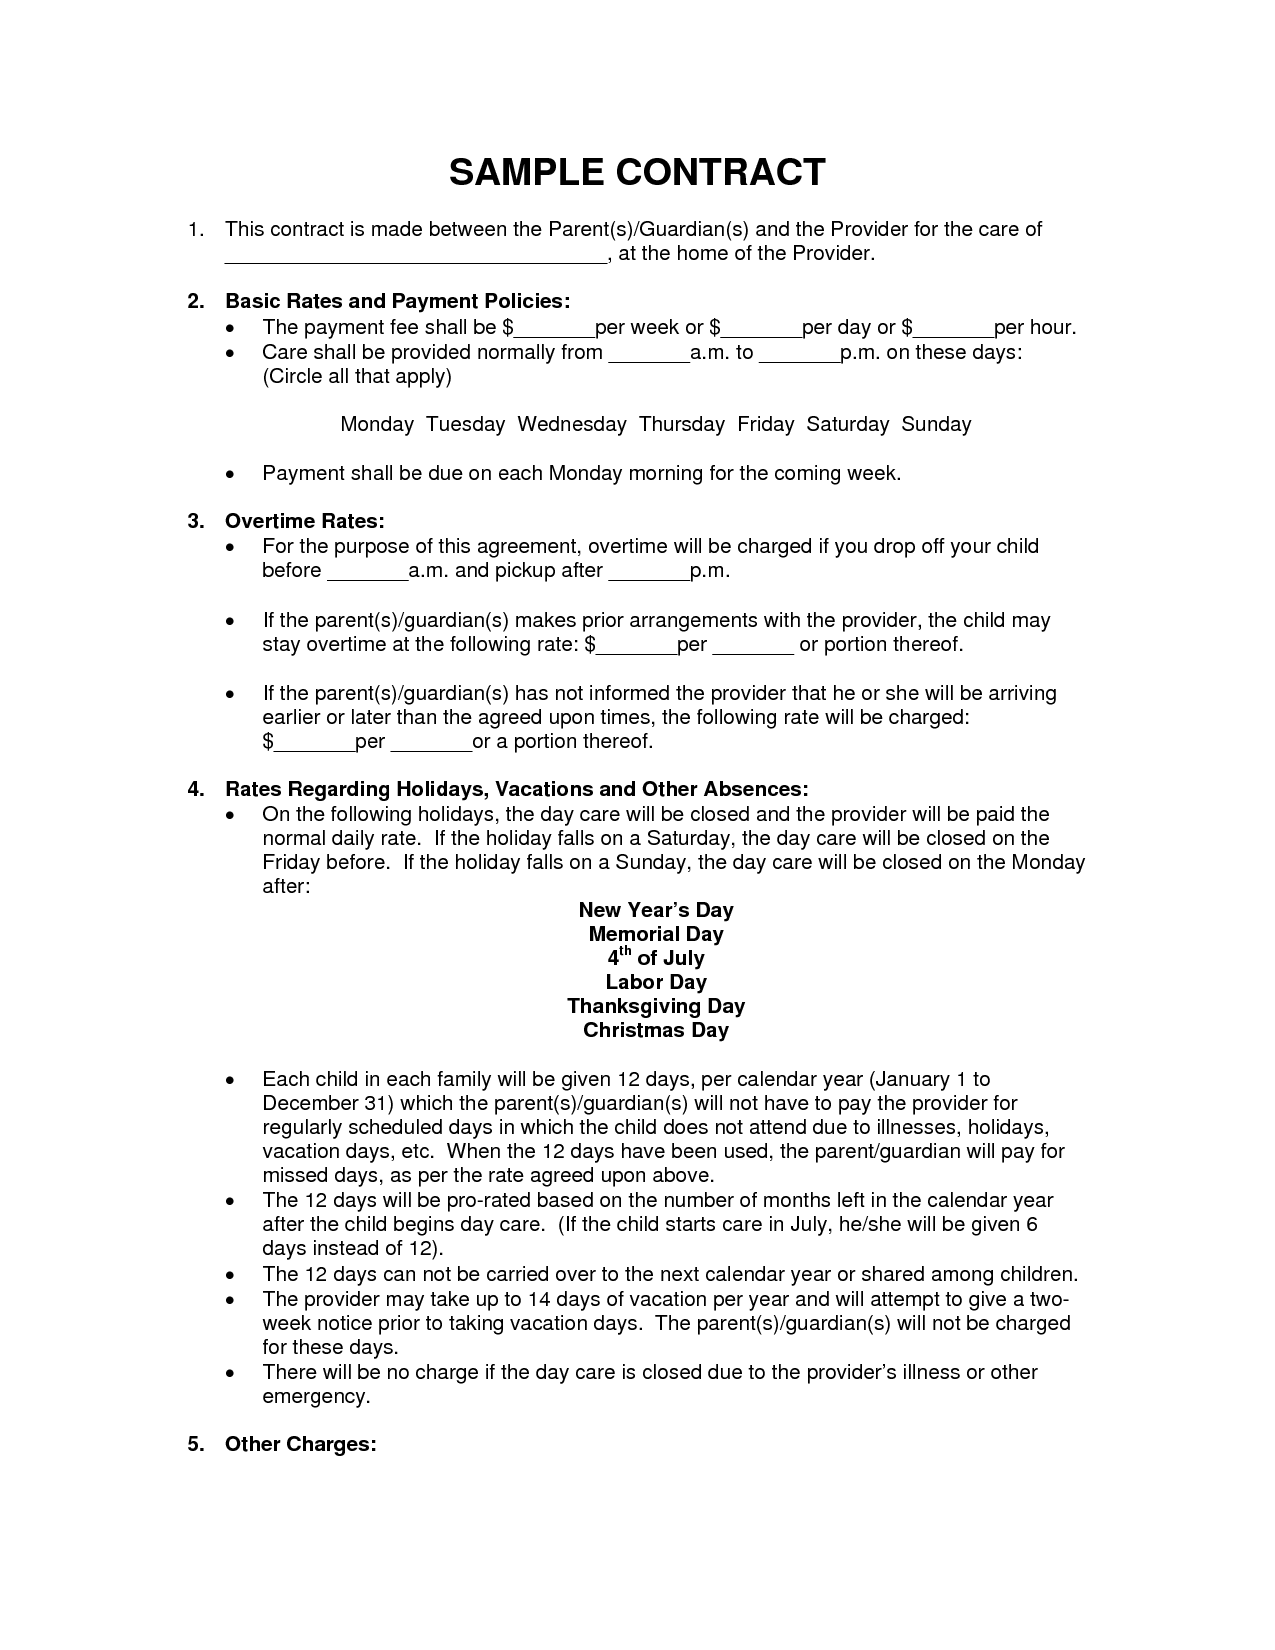 Scope Of Work Template Love It Home Daycare Daycare Contract